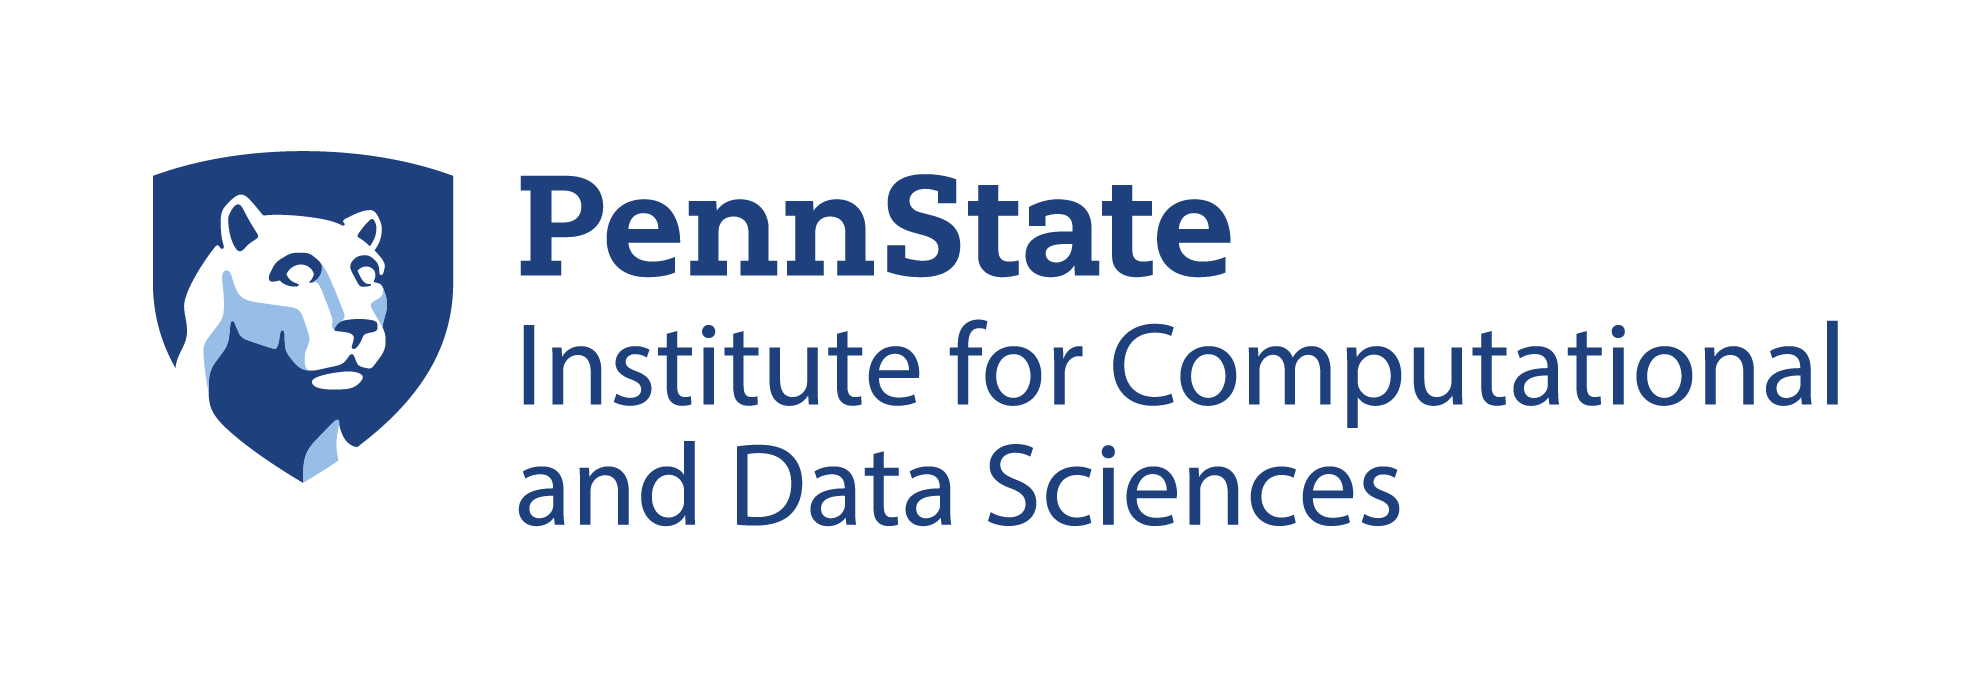 Penn State Institute for Computational and Data Sciences